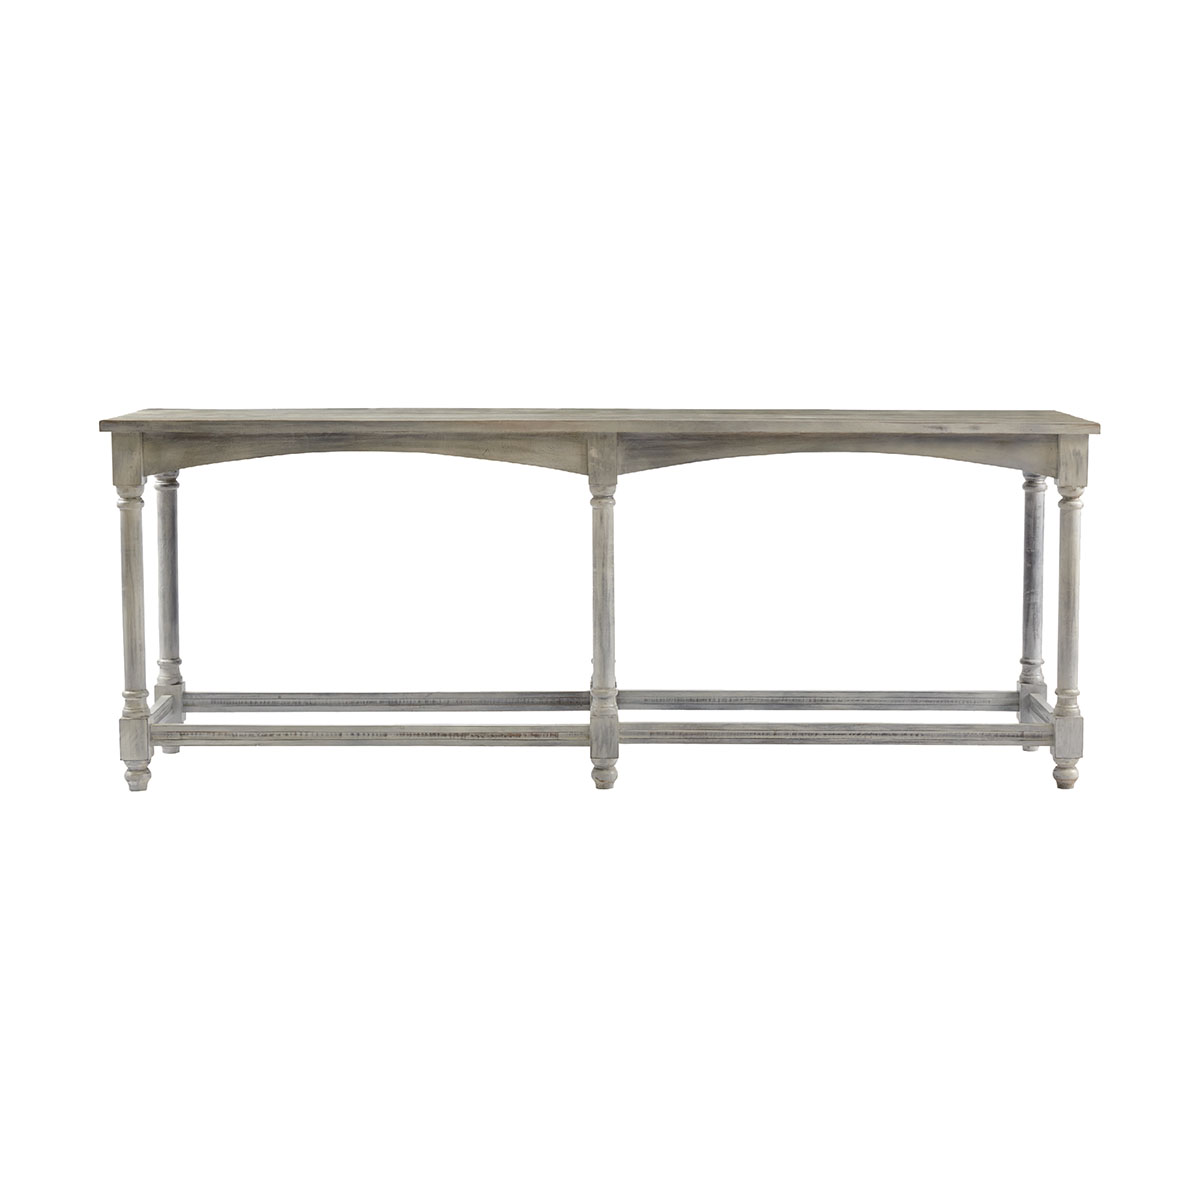 Stein World Longbottom Console Table